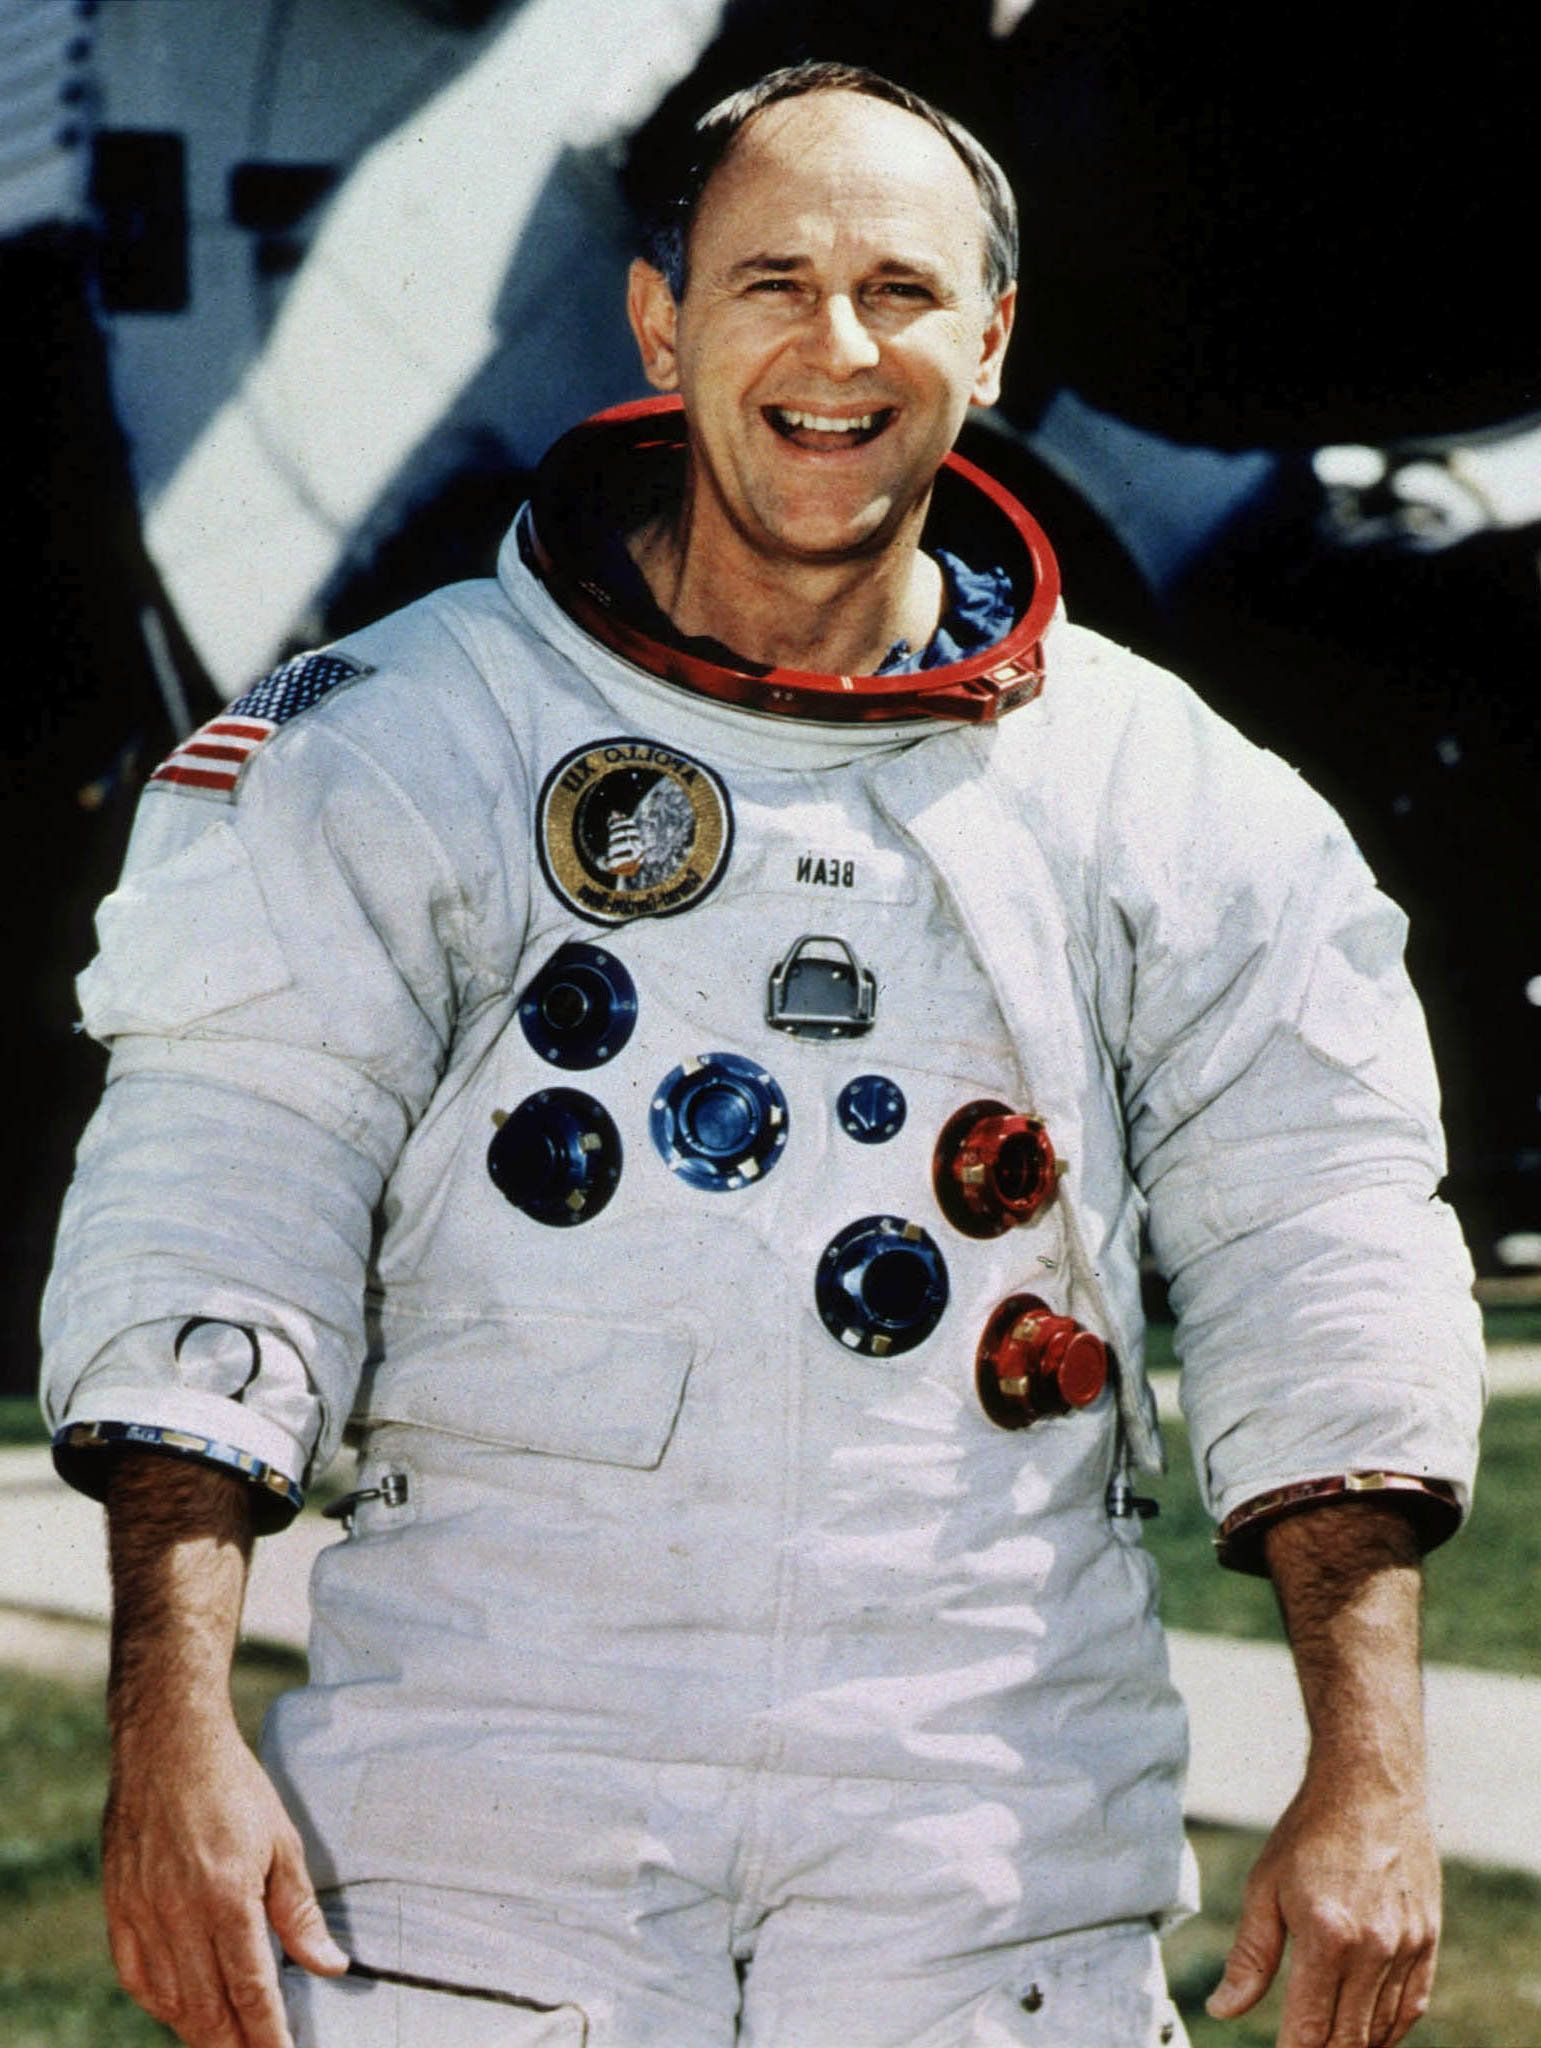 Retired Astronaut Alan Bean, 66, poses for a portrait in his spacesuit at the Johnson Space Center in Houston in this undated photo. Bean, who was the fourth man to walk on the moon in 1969, left NASA in 1981 and made a successful transition from spaceman to a full-time professional artist.